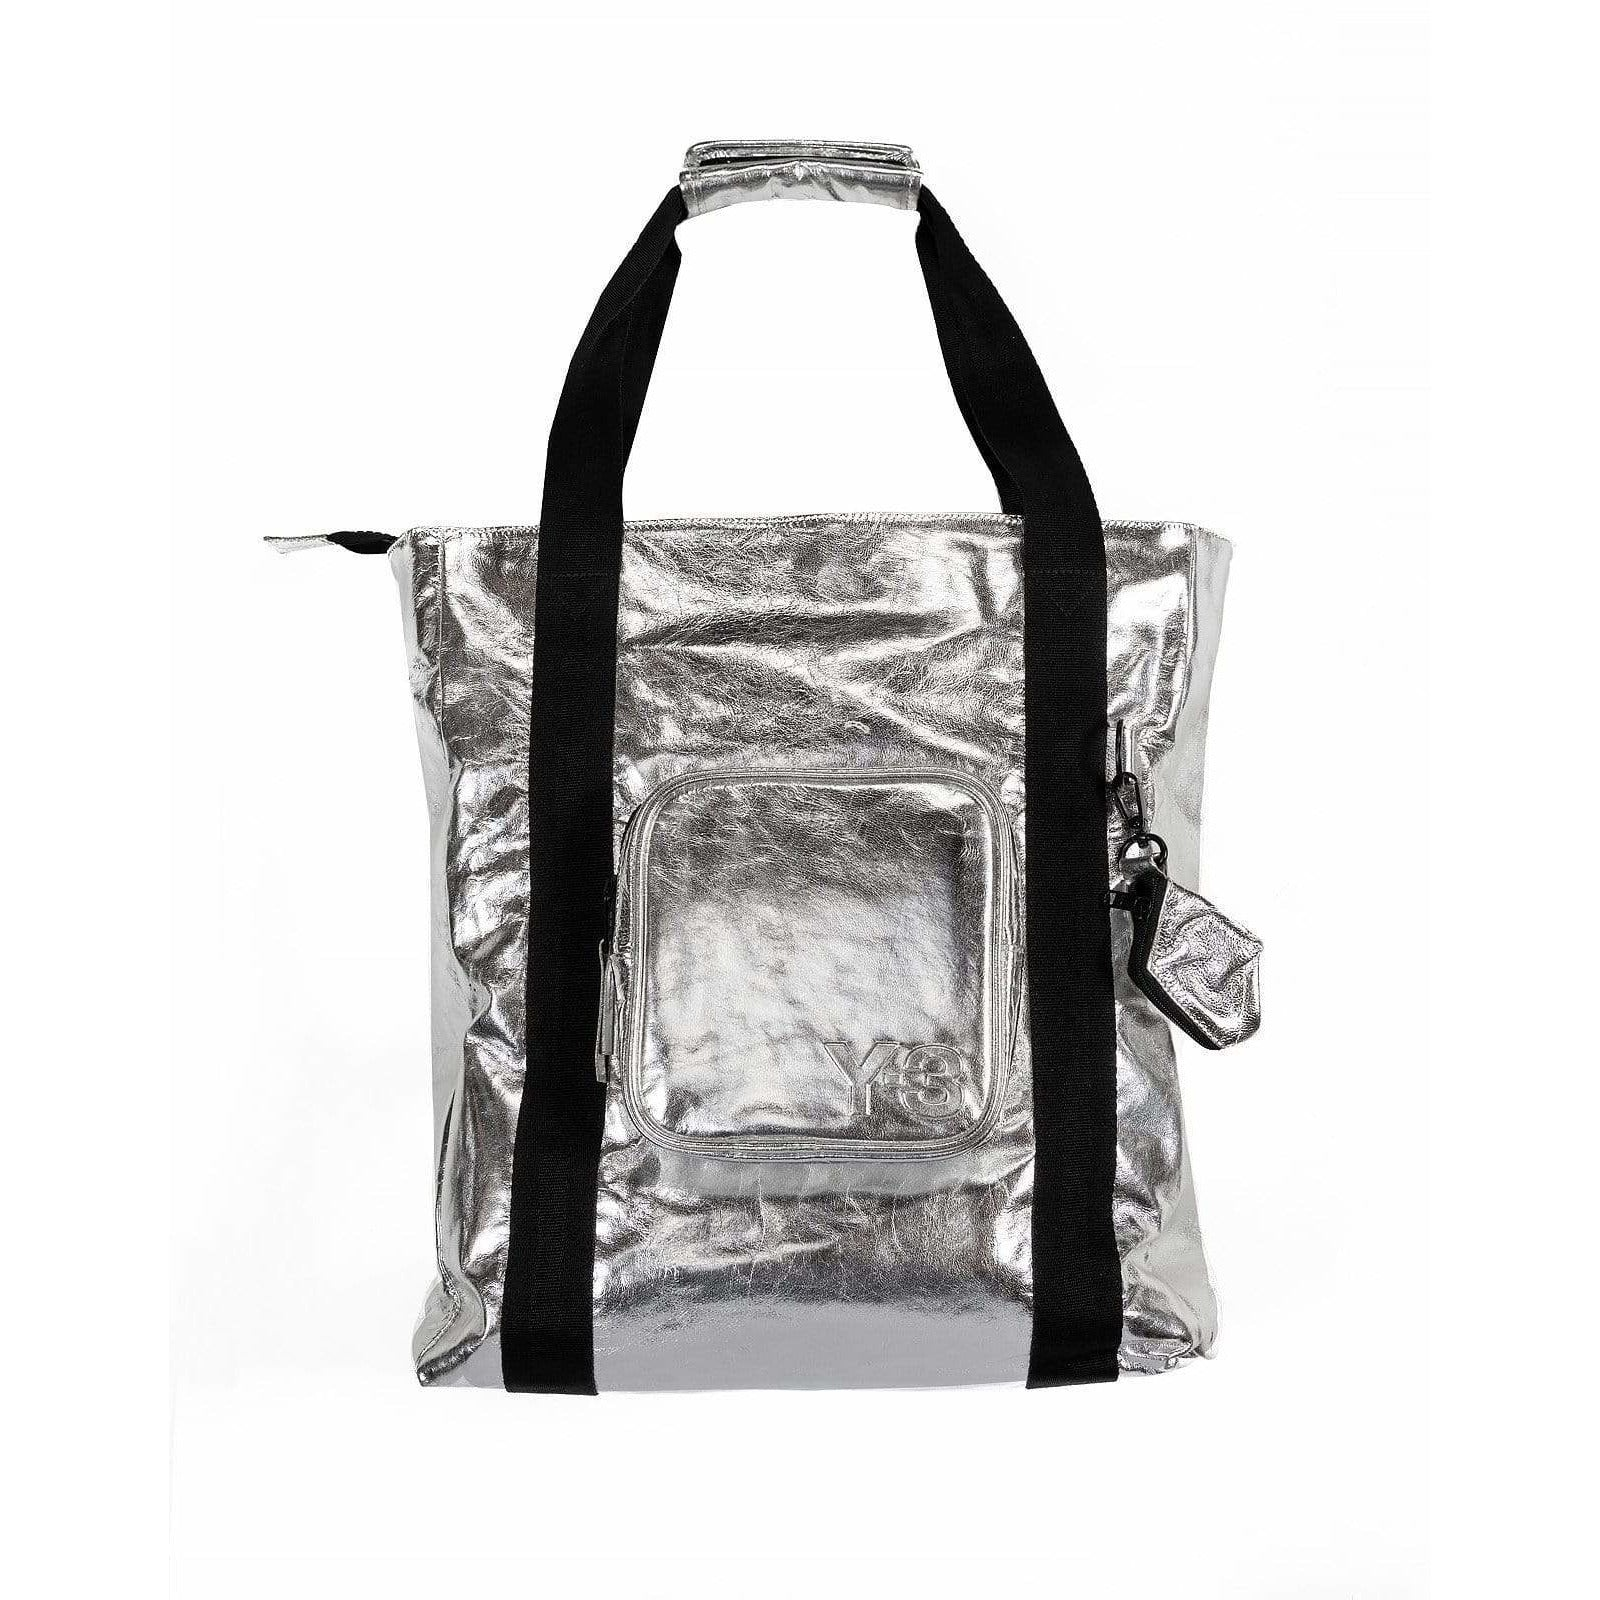 Y3 bags shopper bag